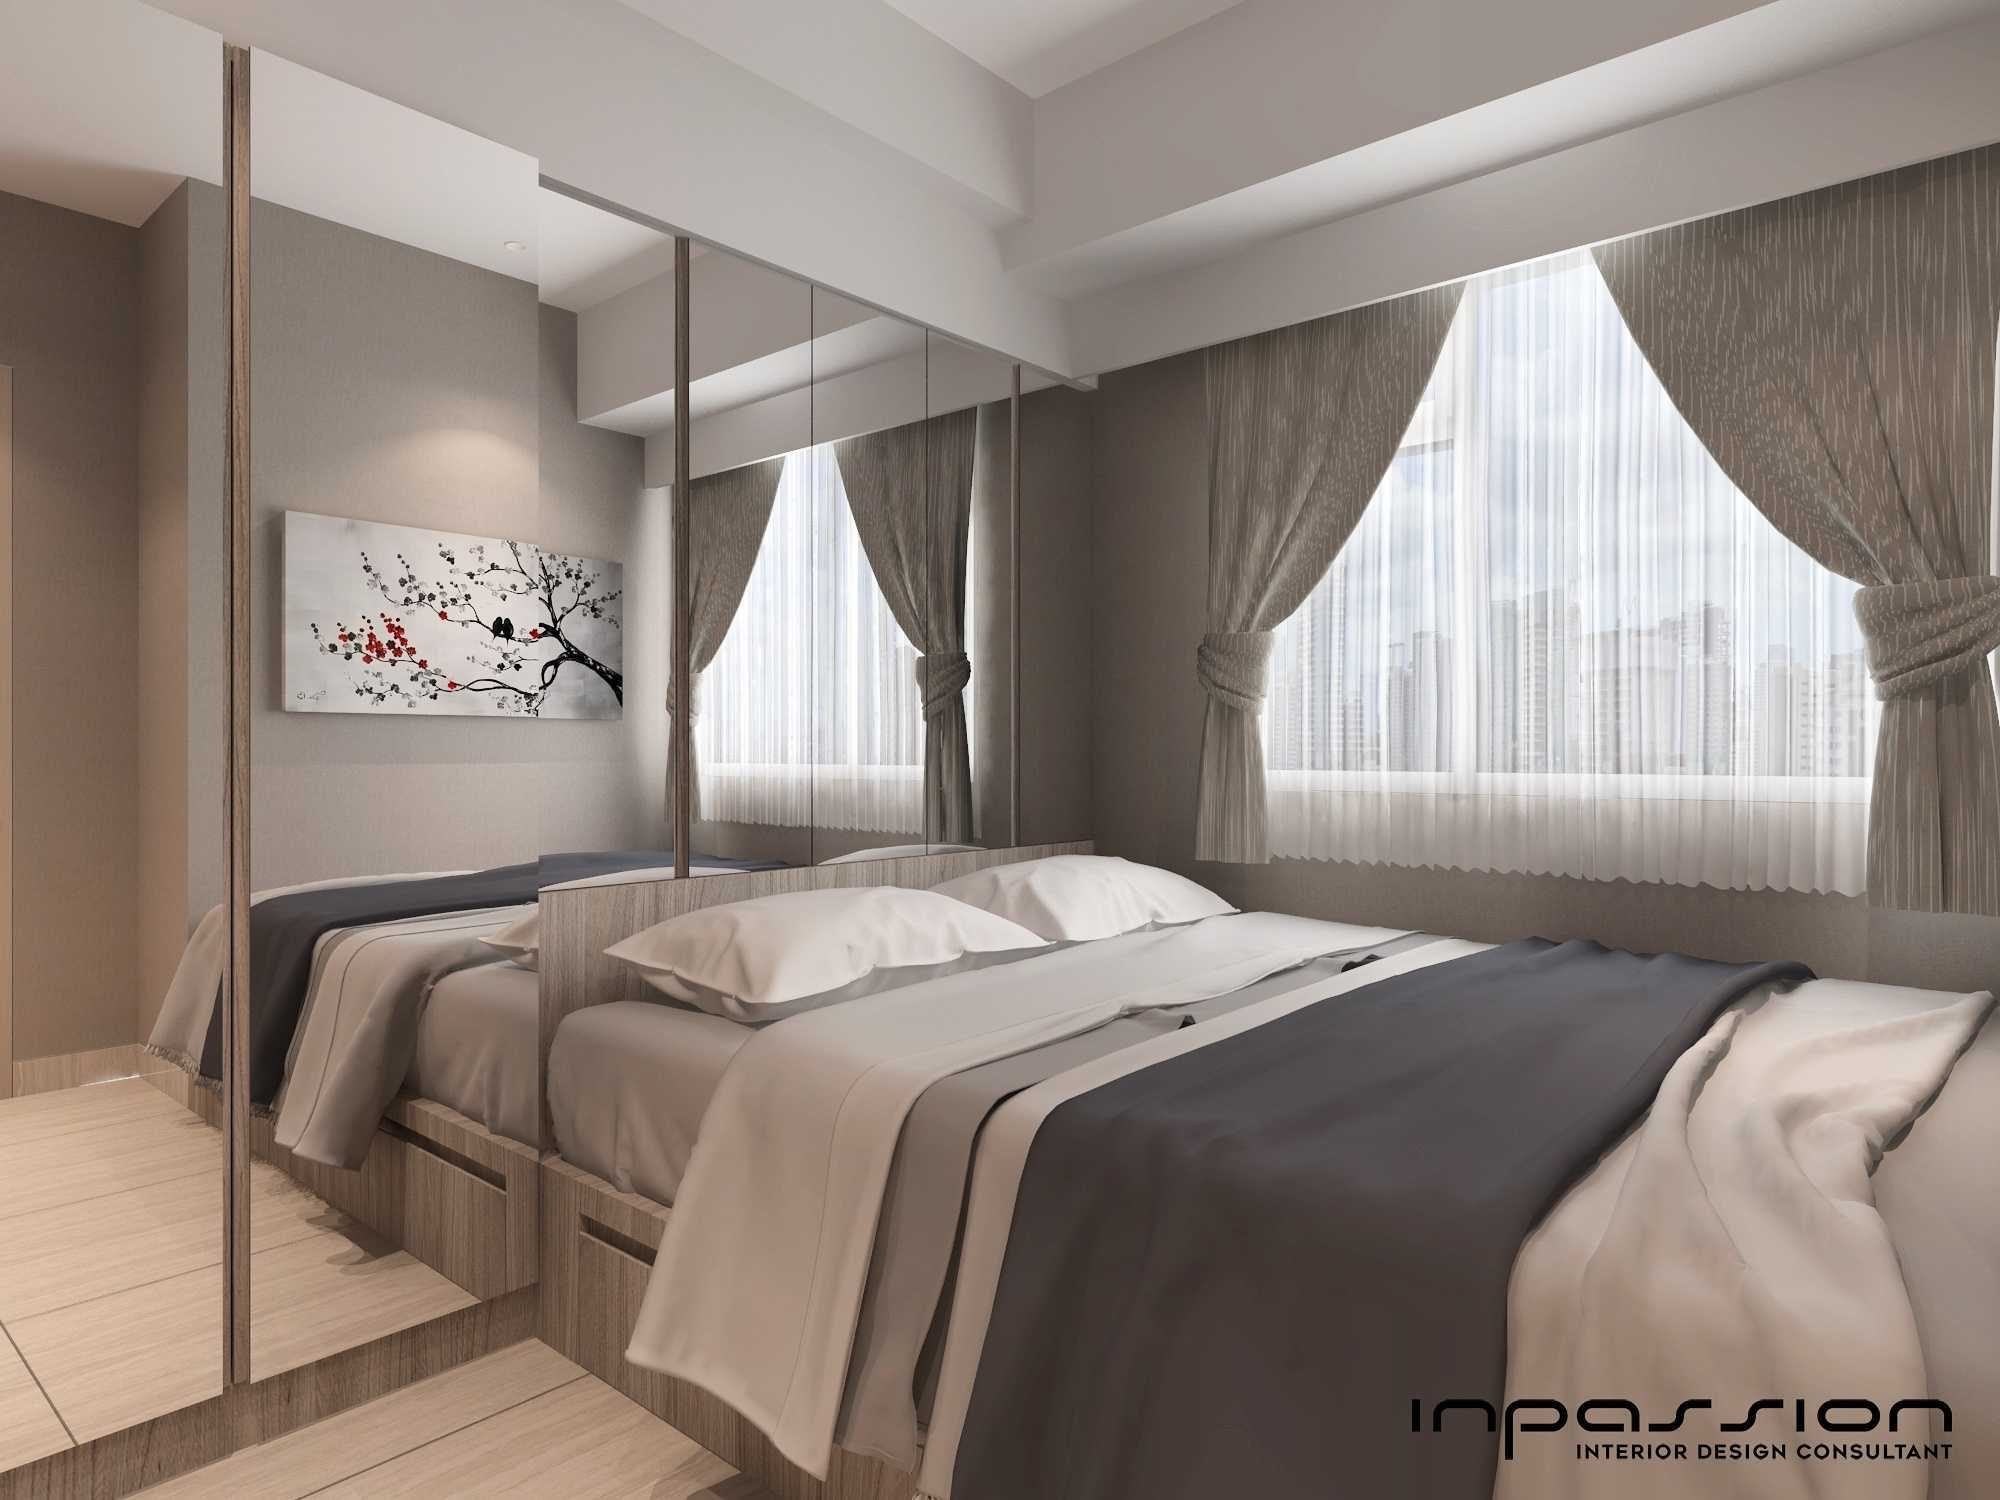 Inpassion Interior Design Educity Apartemen 3 Bedroom Surabaya City, East Java, Indonesia Surabaya City, East Java, Indonesia Img20170504112027254 Kontemporer  31585